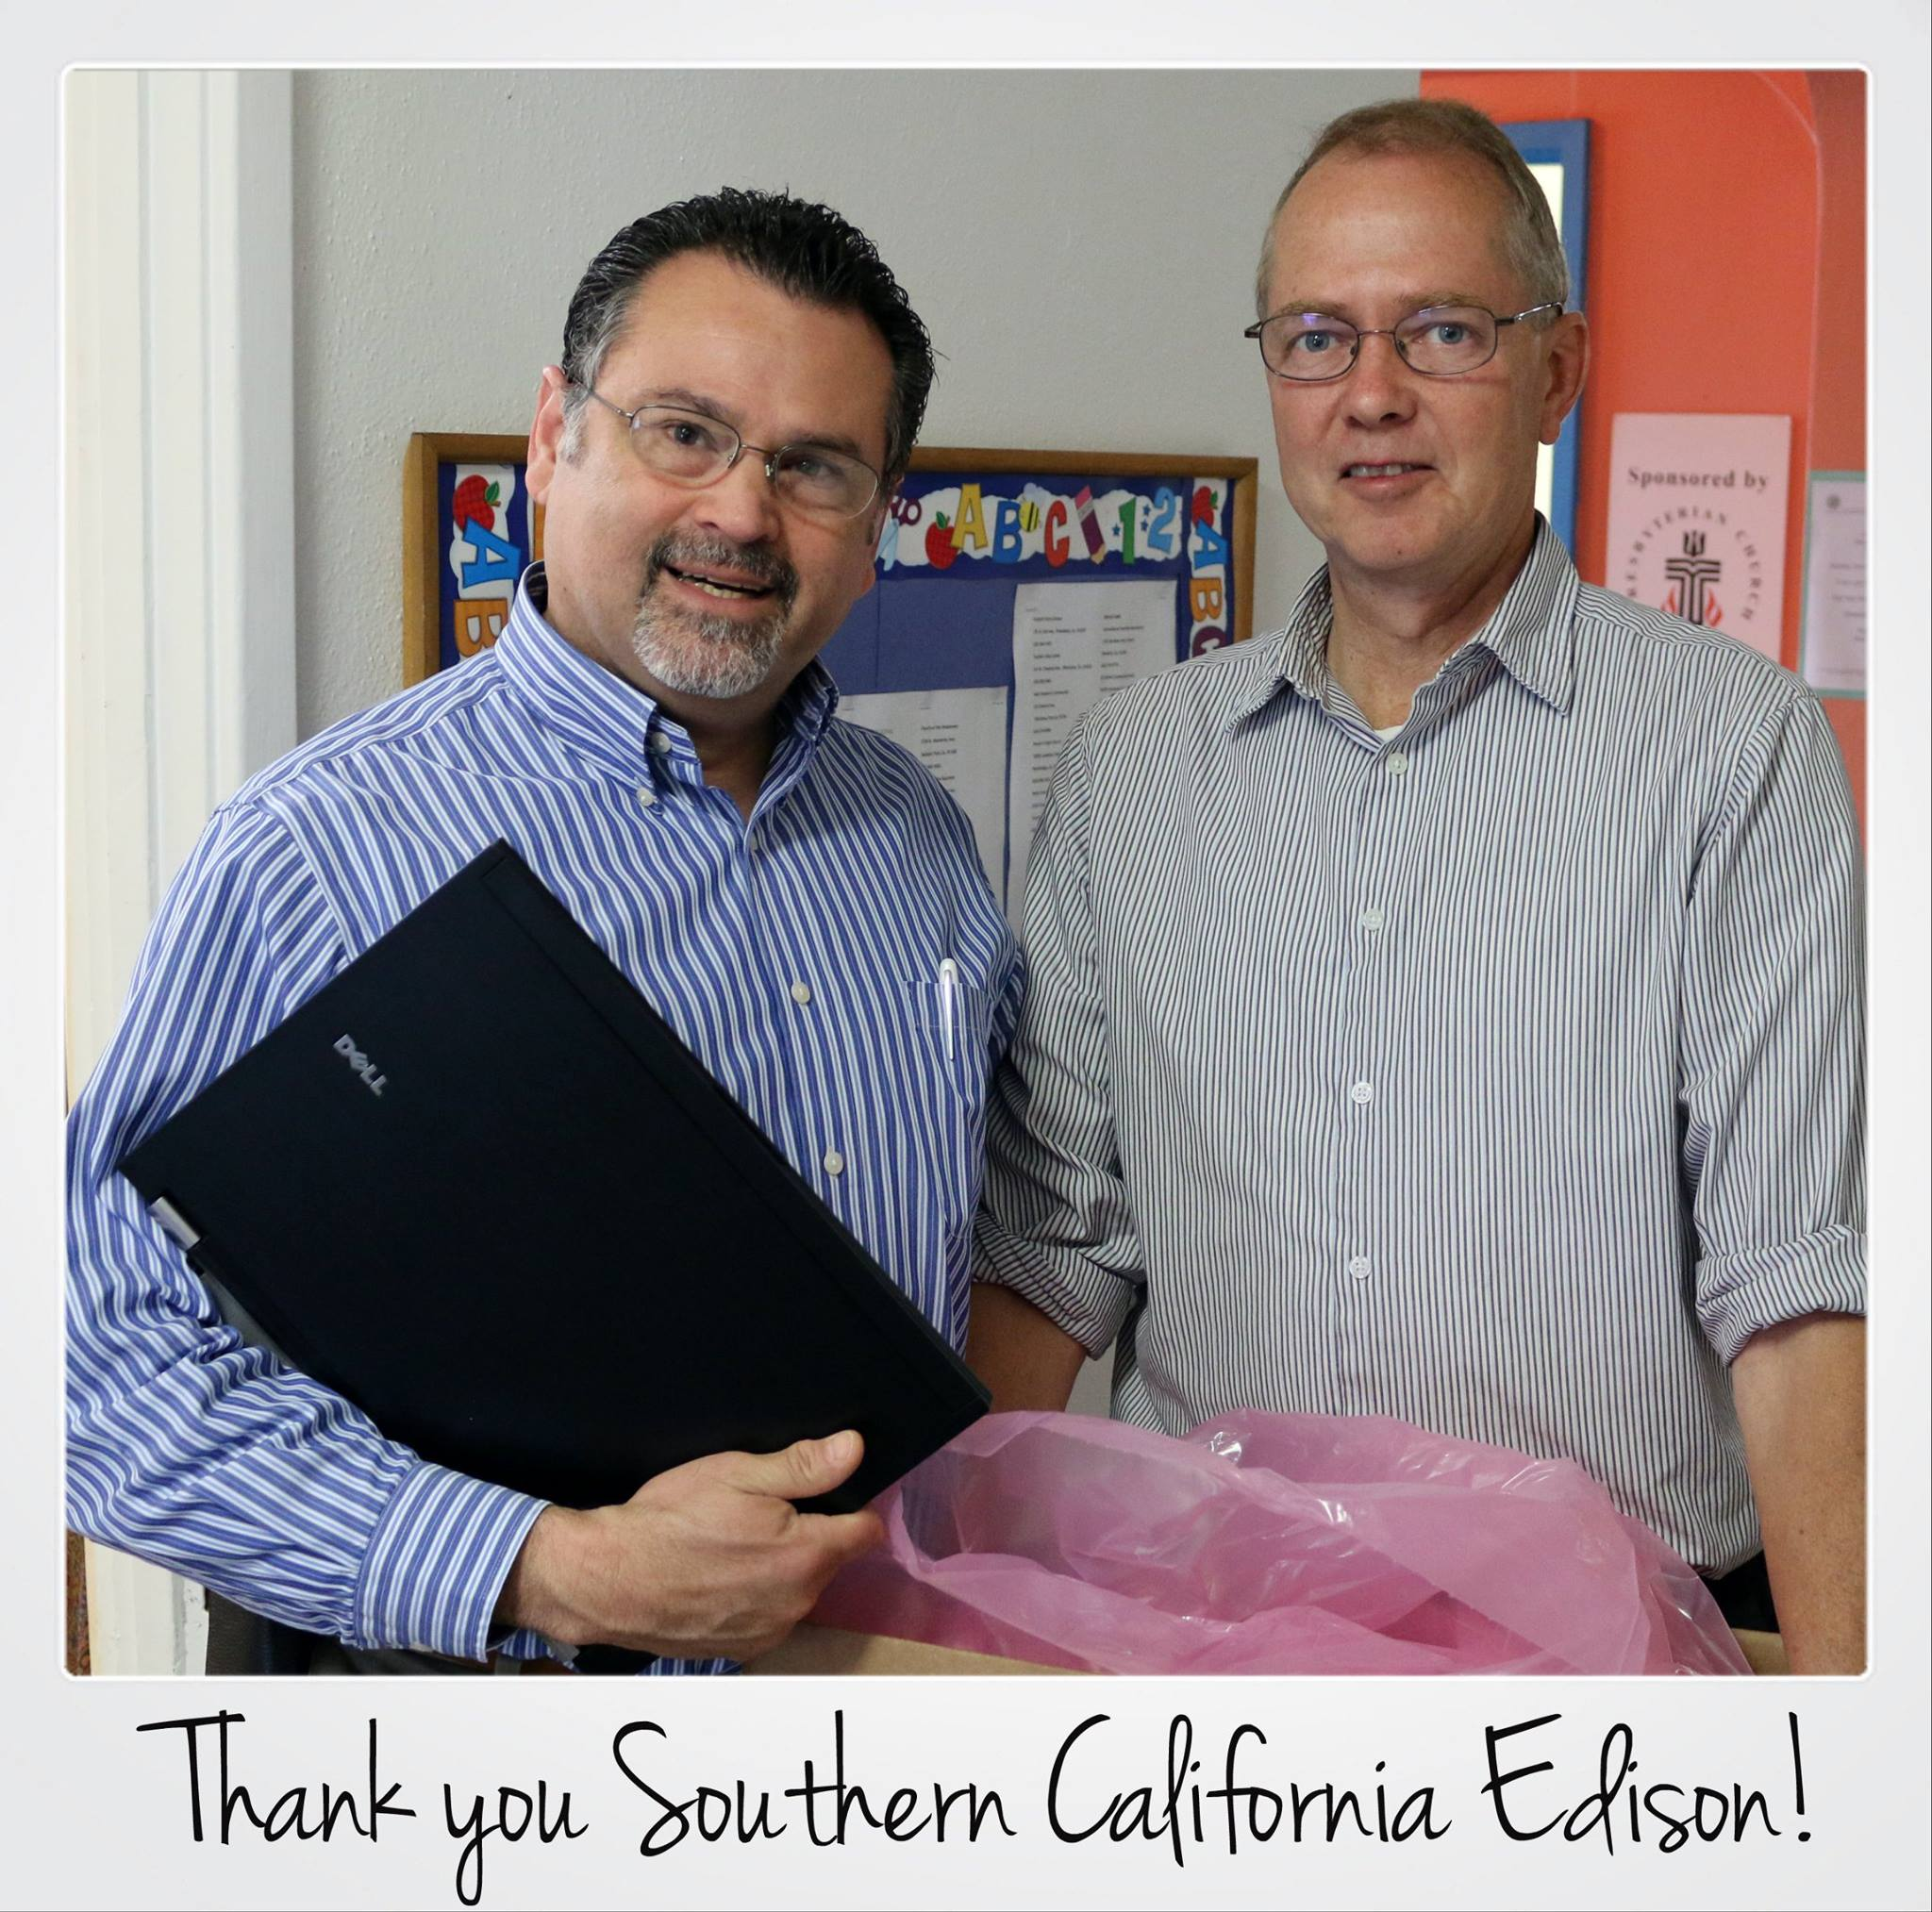 SoCalEdison_LapTopDonation